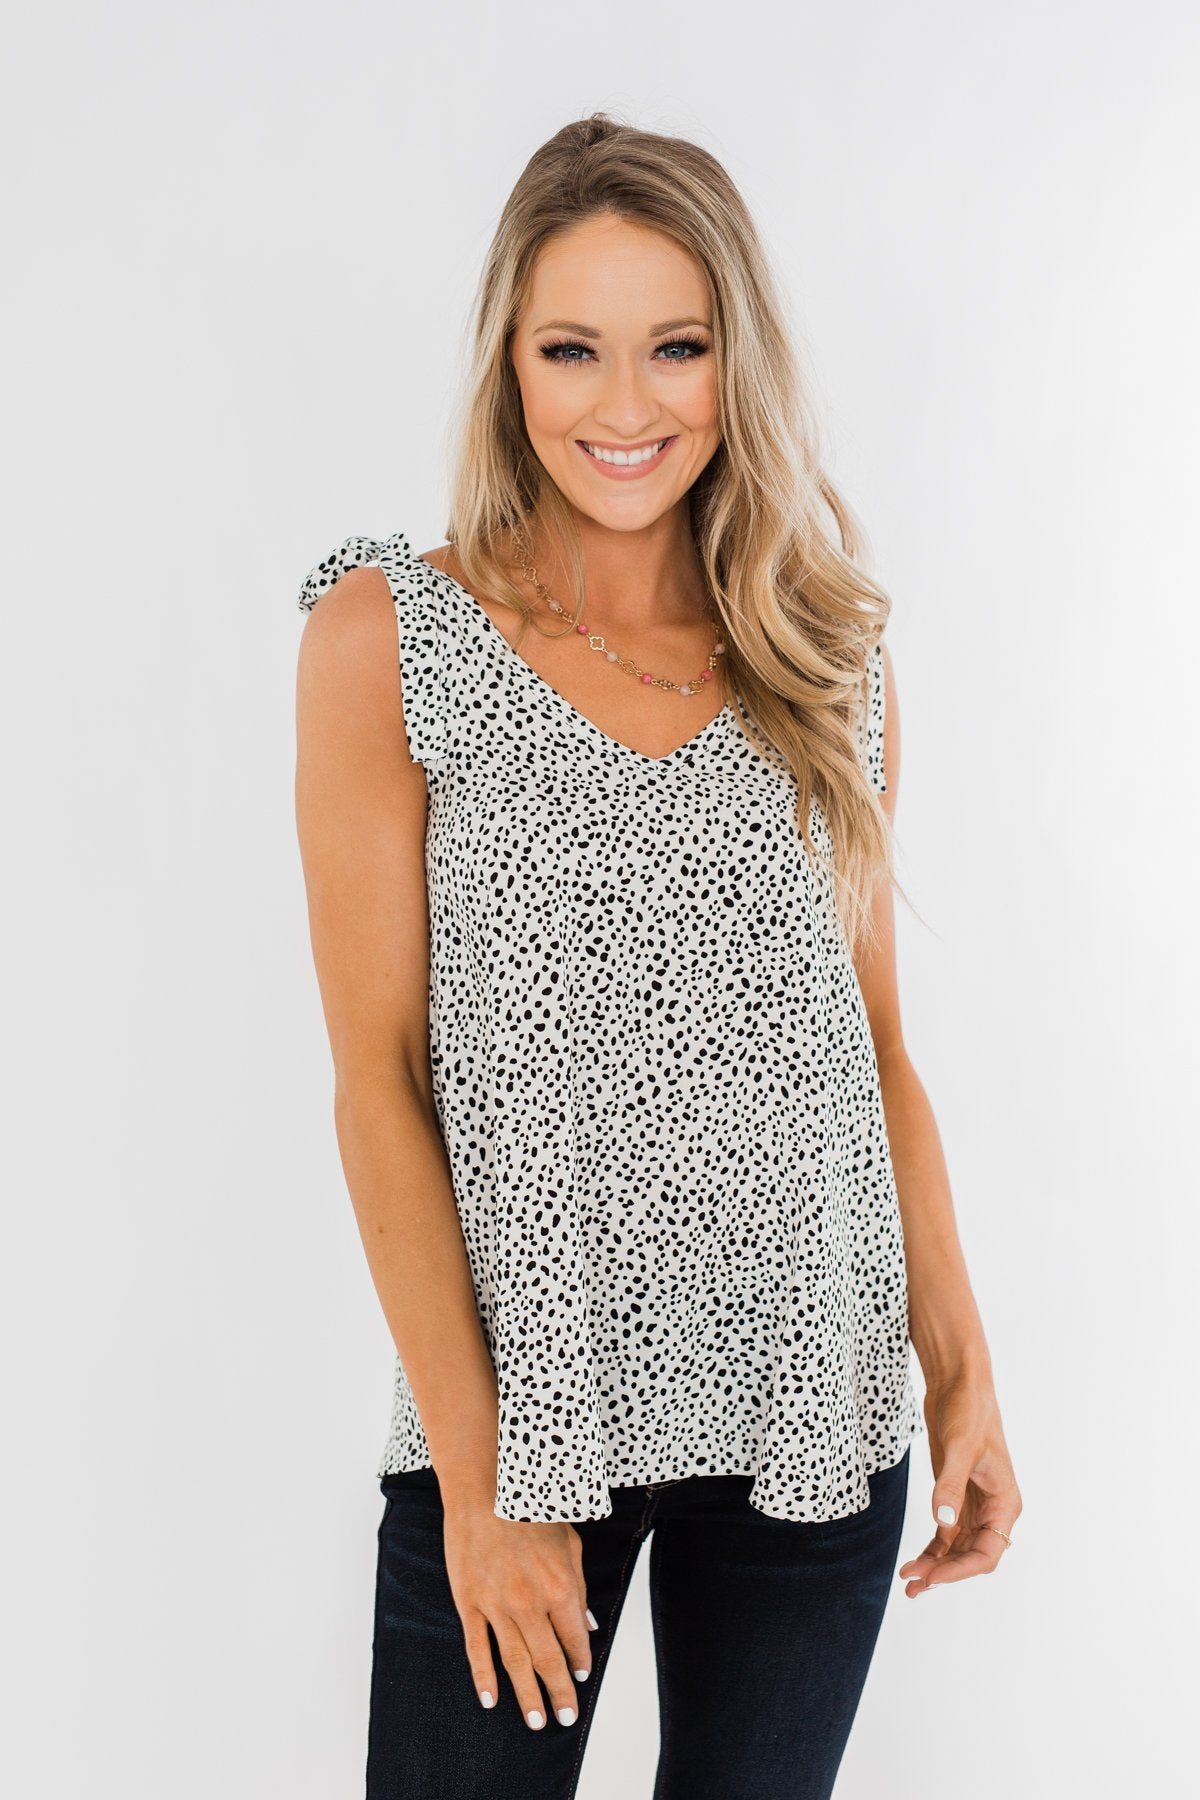 Call Of The Wild Speckled Tie Sleeve Blouse- Off White